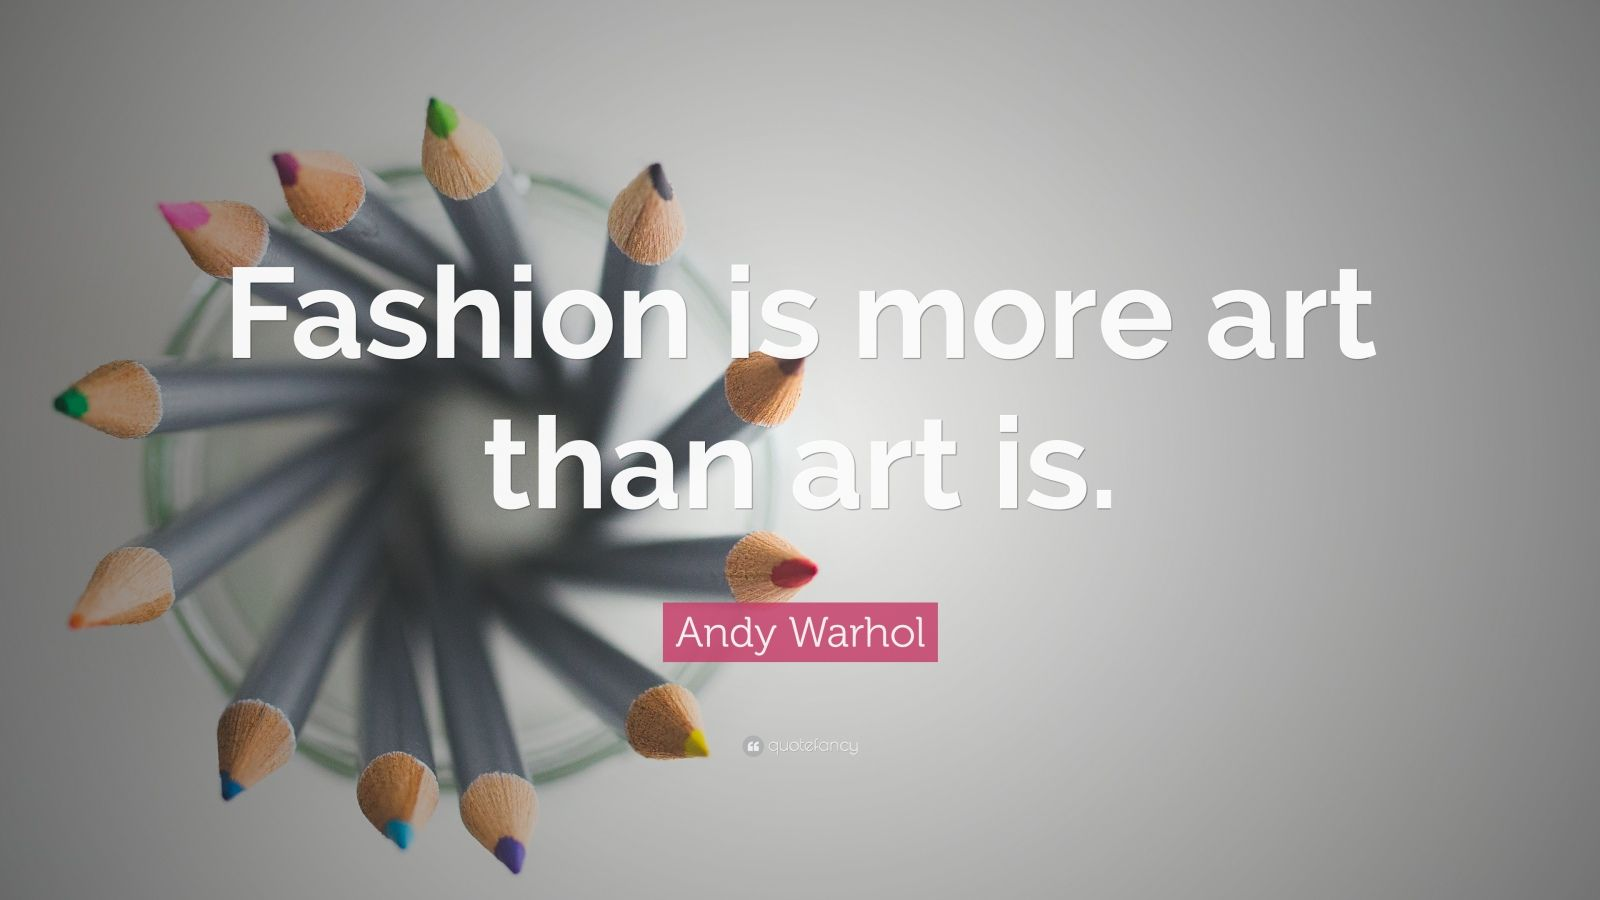 """Andy Warhol Quote: """"Fashion is more art than art is."""""""